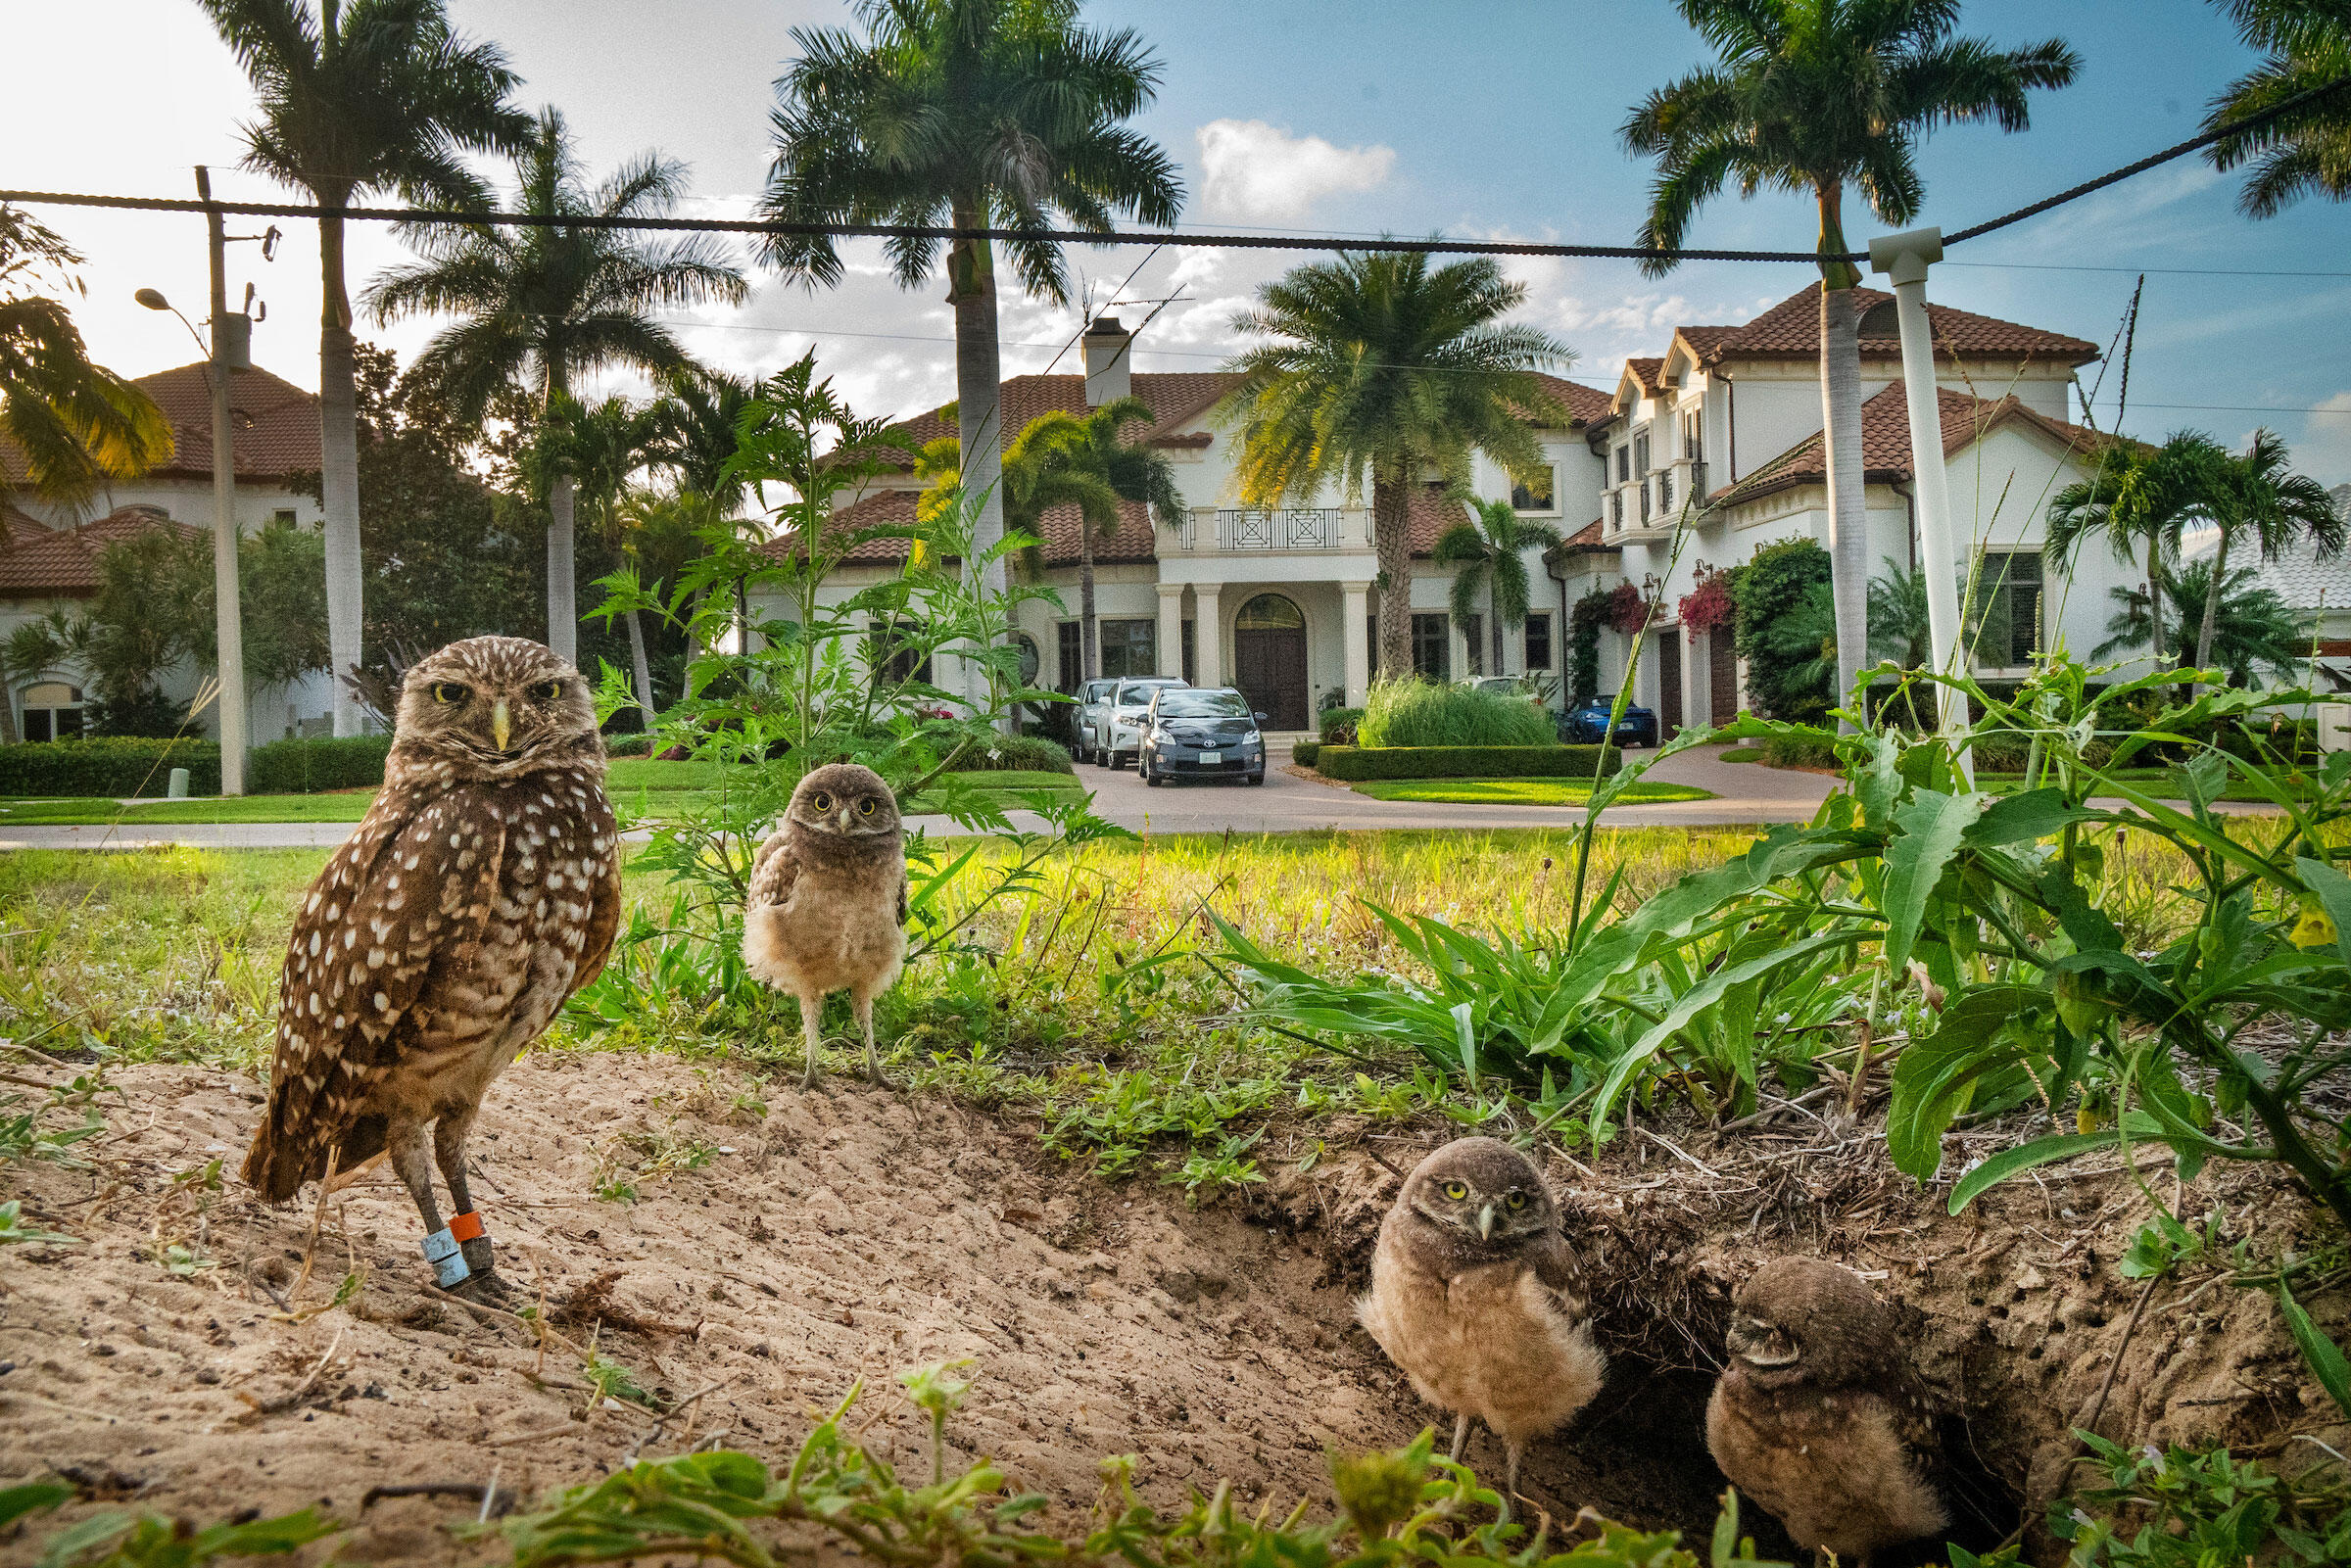 Since her mate disappeared, this female has raised her chicks alone in a burrow on an empty lot in a residential neighborhood. Karine Aigner